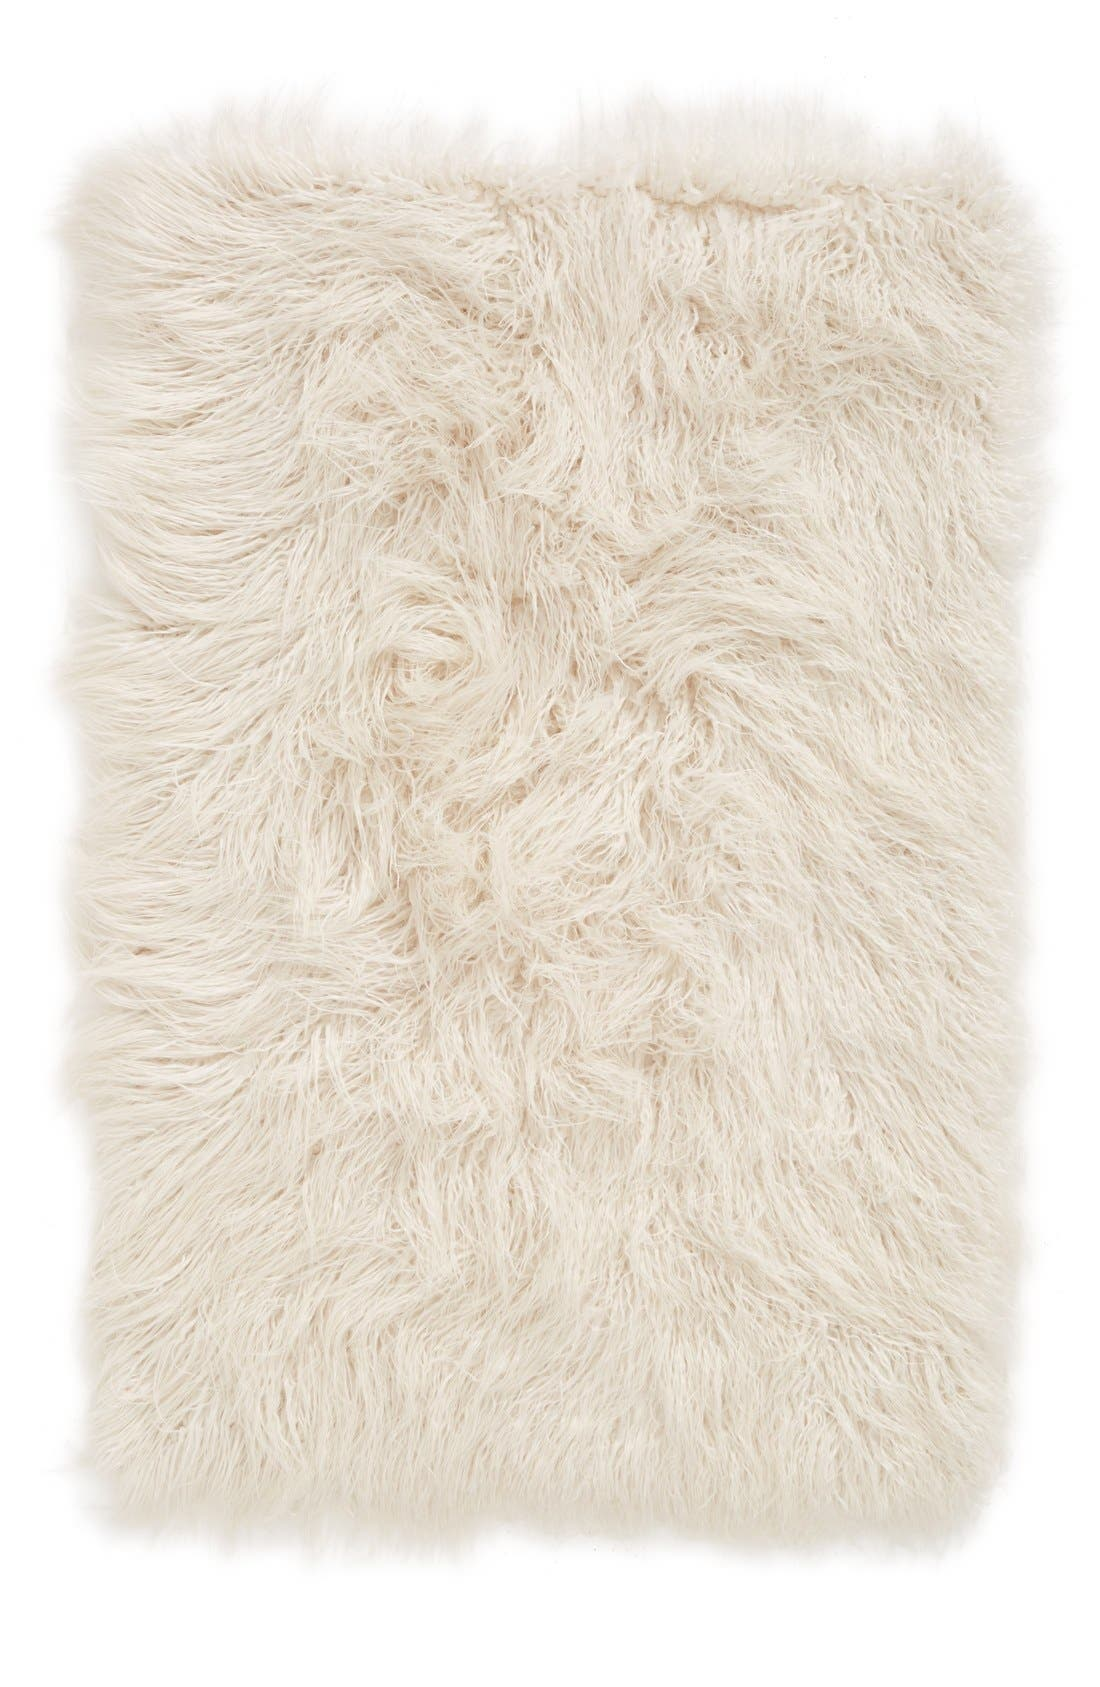 'Mongolian' Faux Fur Area Rug,                             Main thumbnail 1, color,                             900